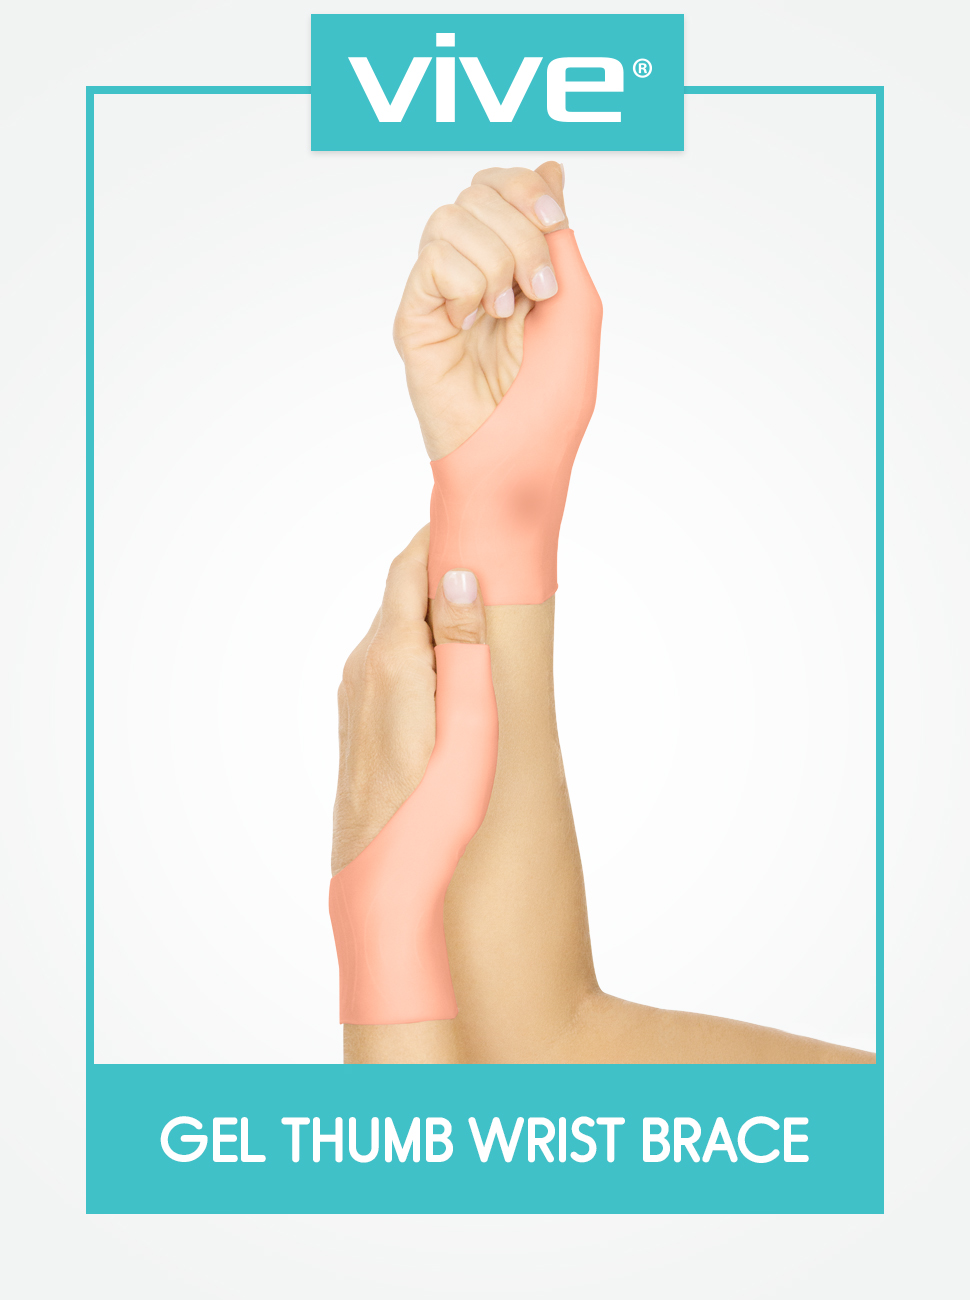 Gel Thumb Wrist Brace (Pair) - Spica Support Cool Wrap for Arthritis Dequervains Tenosynovitis